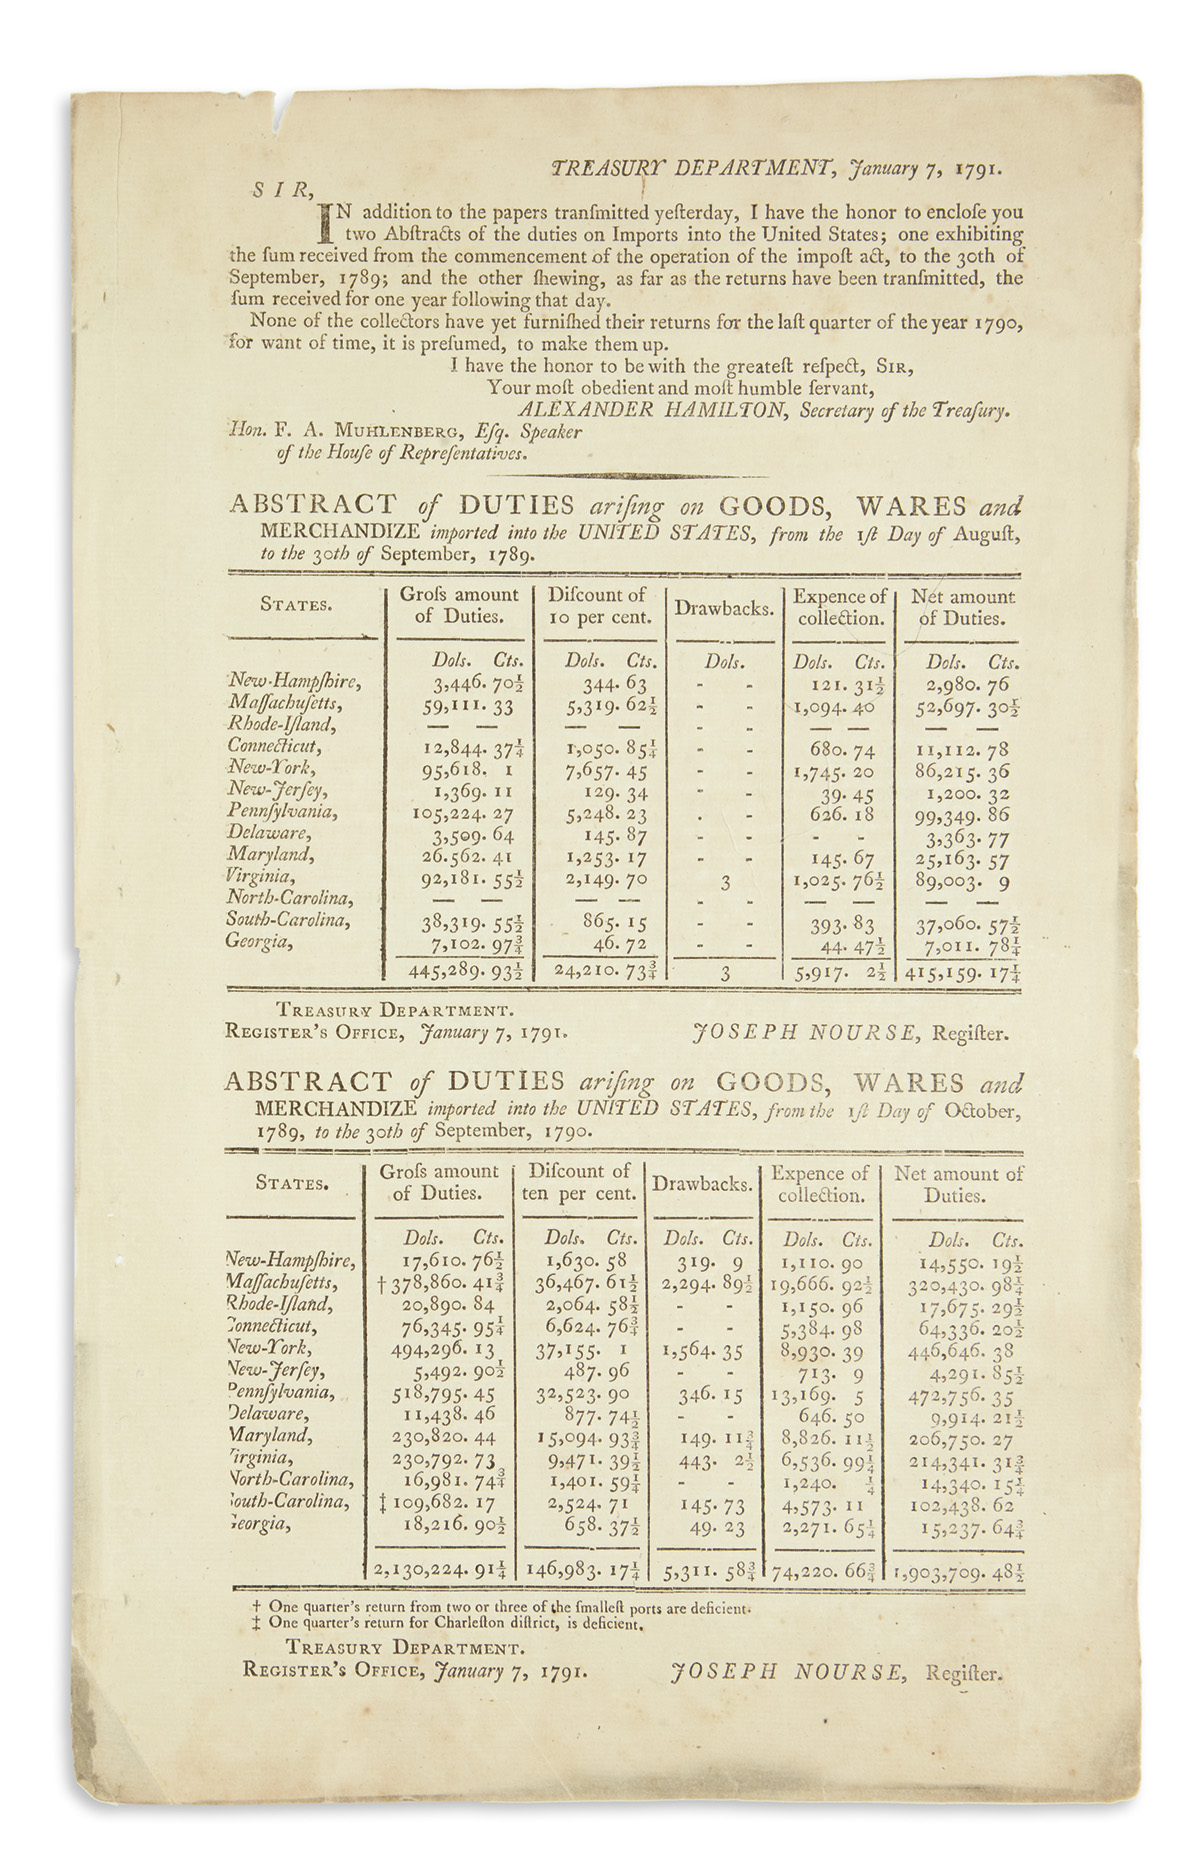 HAMILTON-ALEXANDER-Printed-report-on-import-duties-issued-as